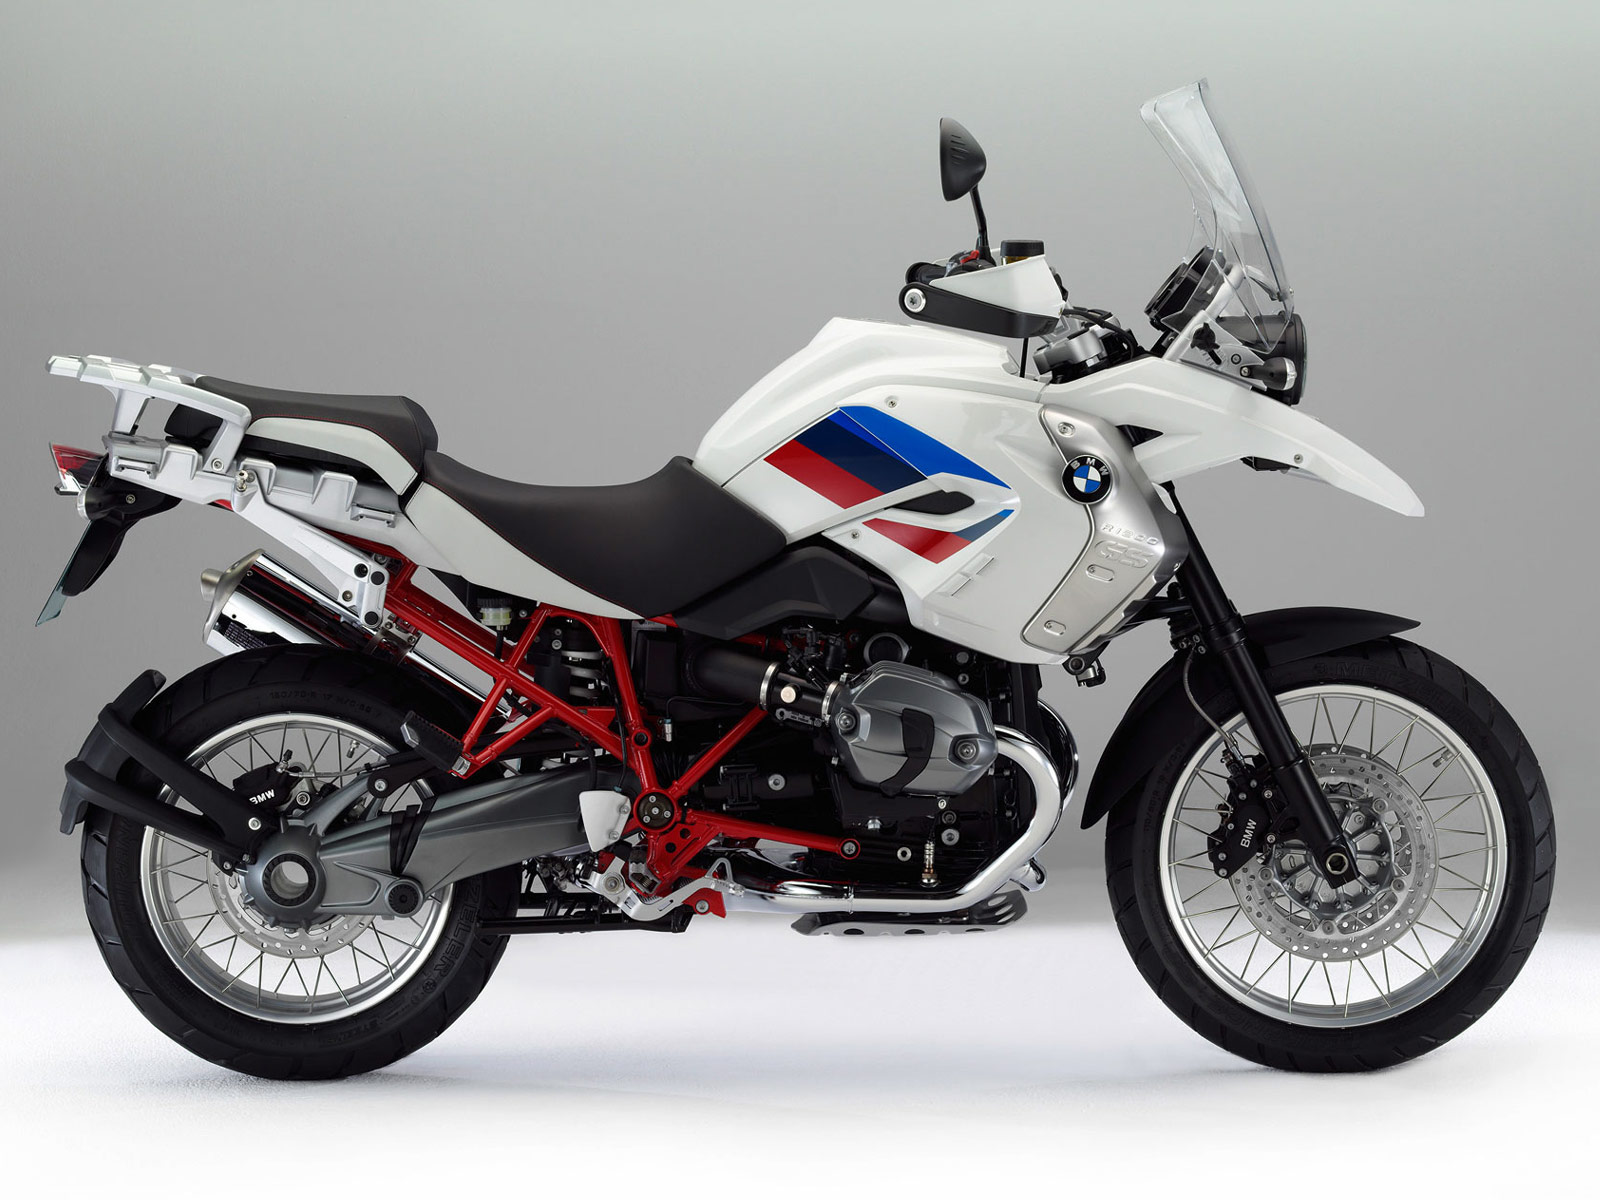 2012 BMW R1200GS Rallye motorcycle wallpapers, review, specifications